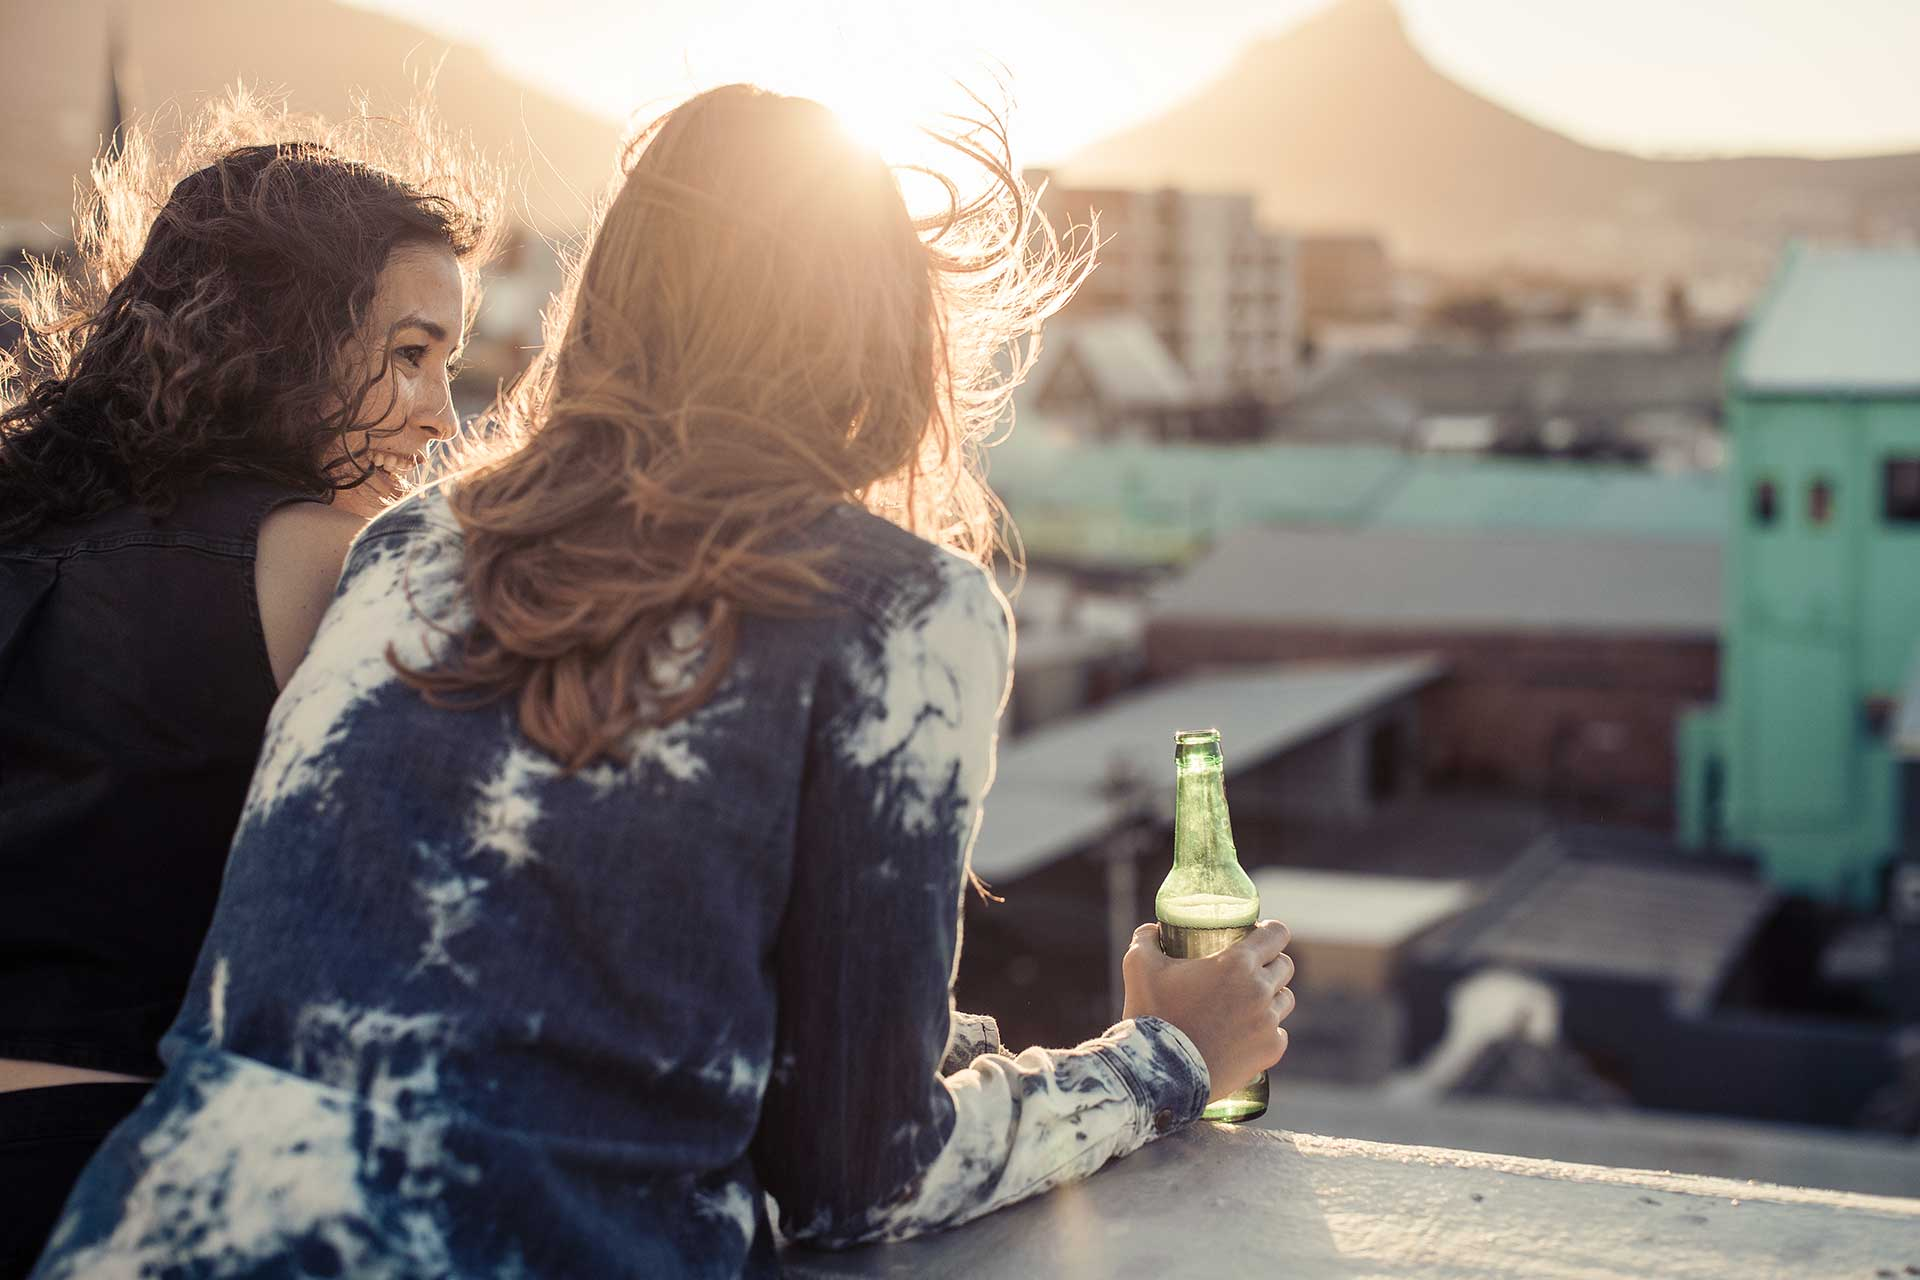 Bier Rooftop Party Lifestyle Fotograf Werbung Kapstadt